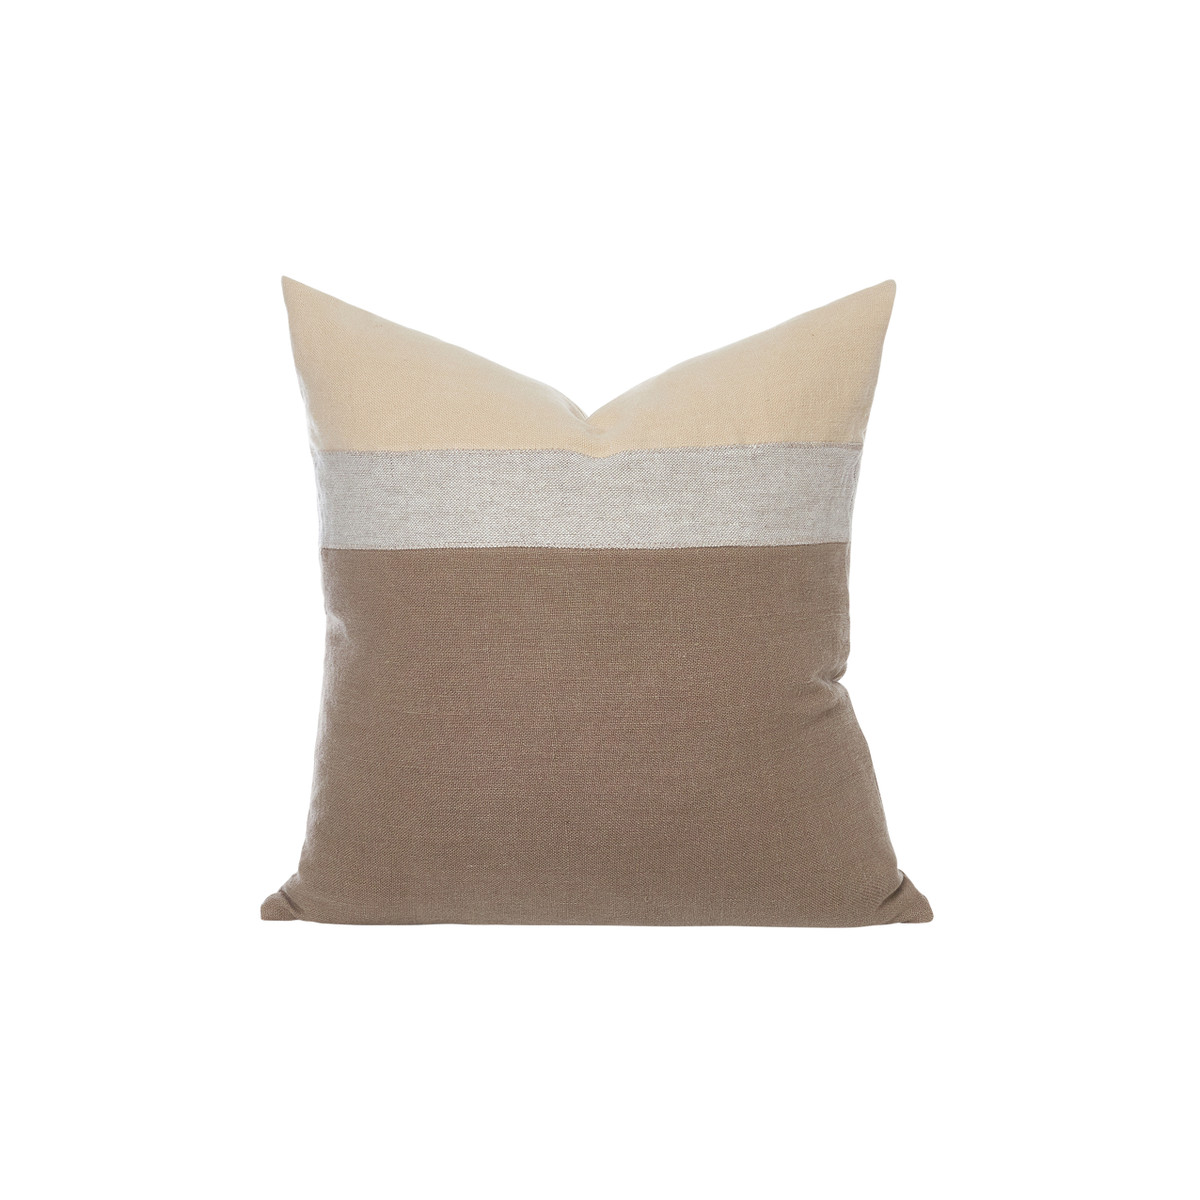 Cooper Pillow 22 Eco Linen - Straw - Front